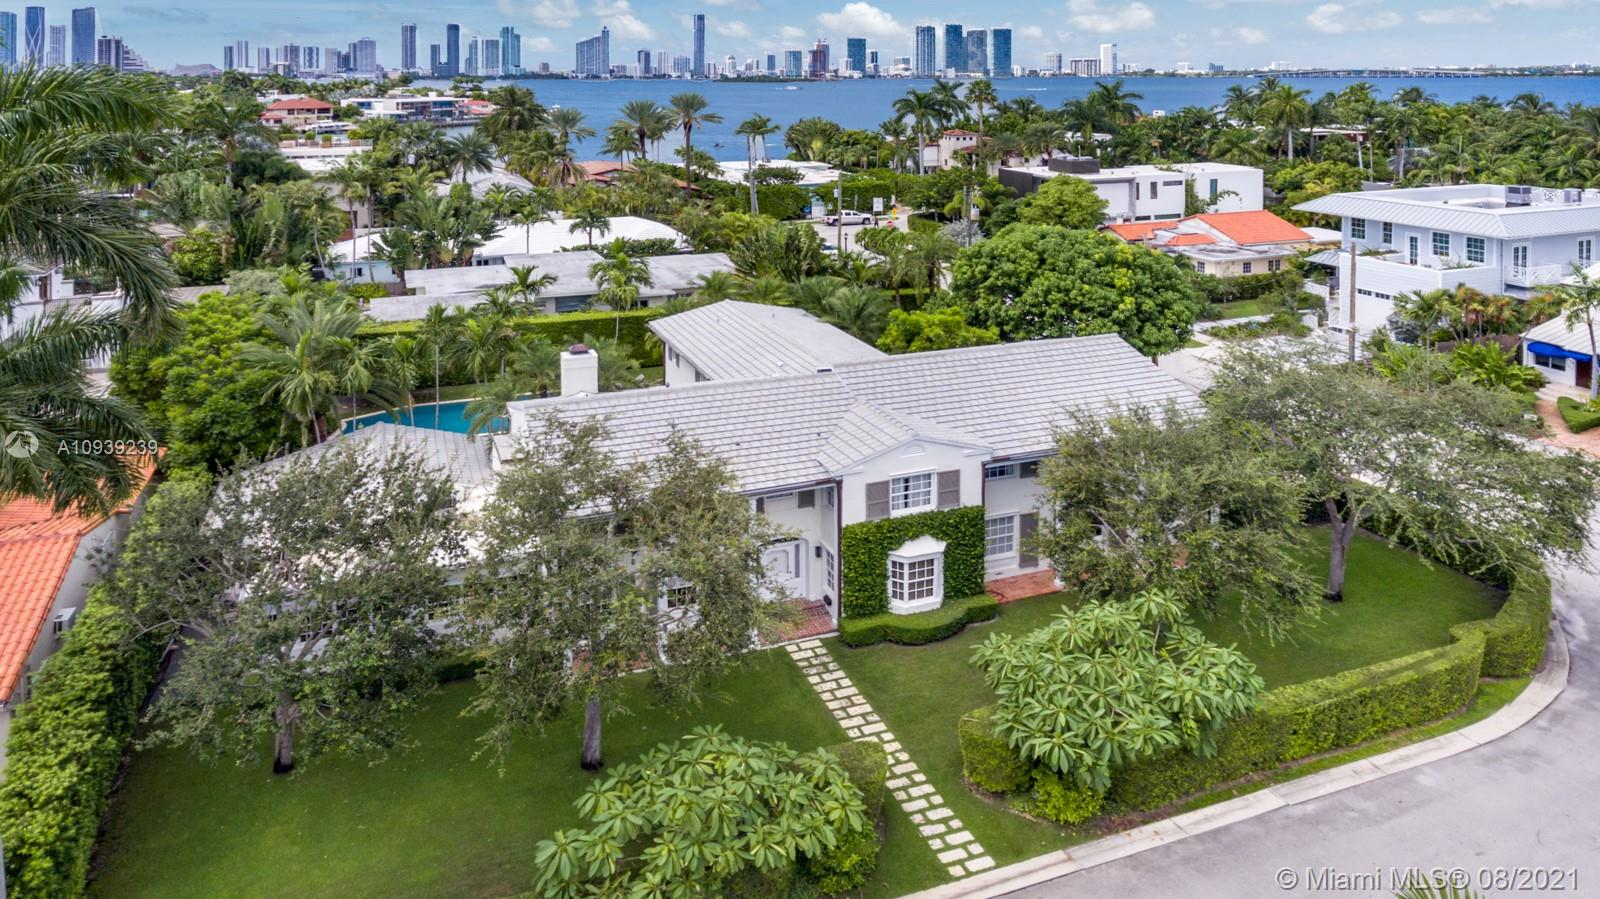 Venetian Islands - 620 E Dilido Dr, Miami Beach, FL 33139